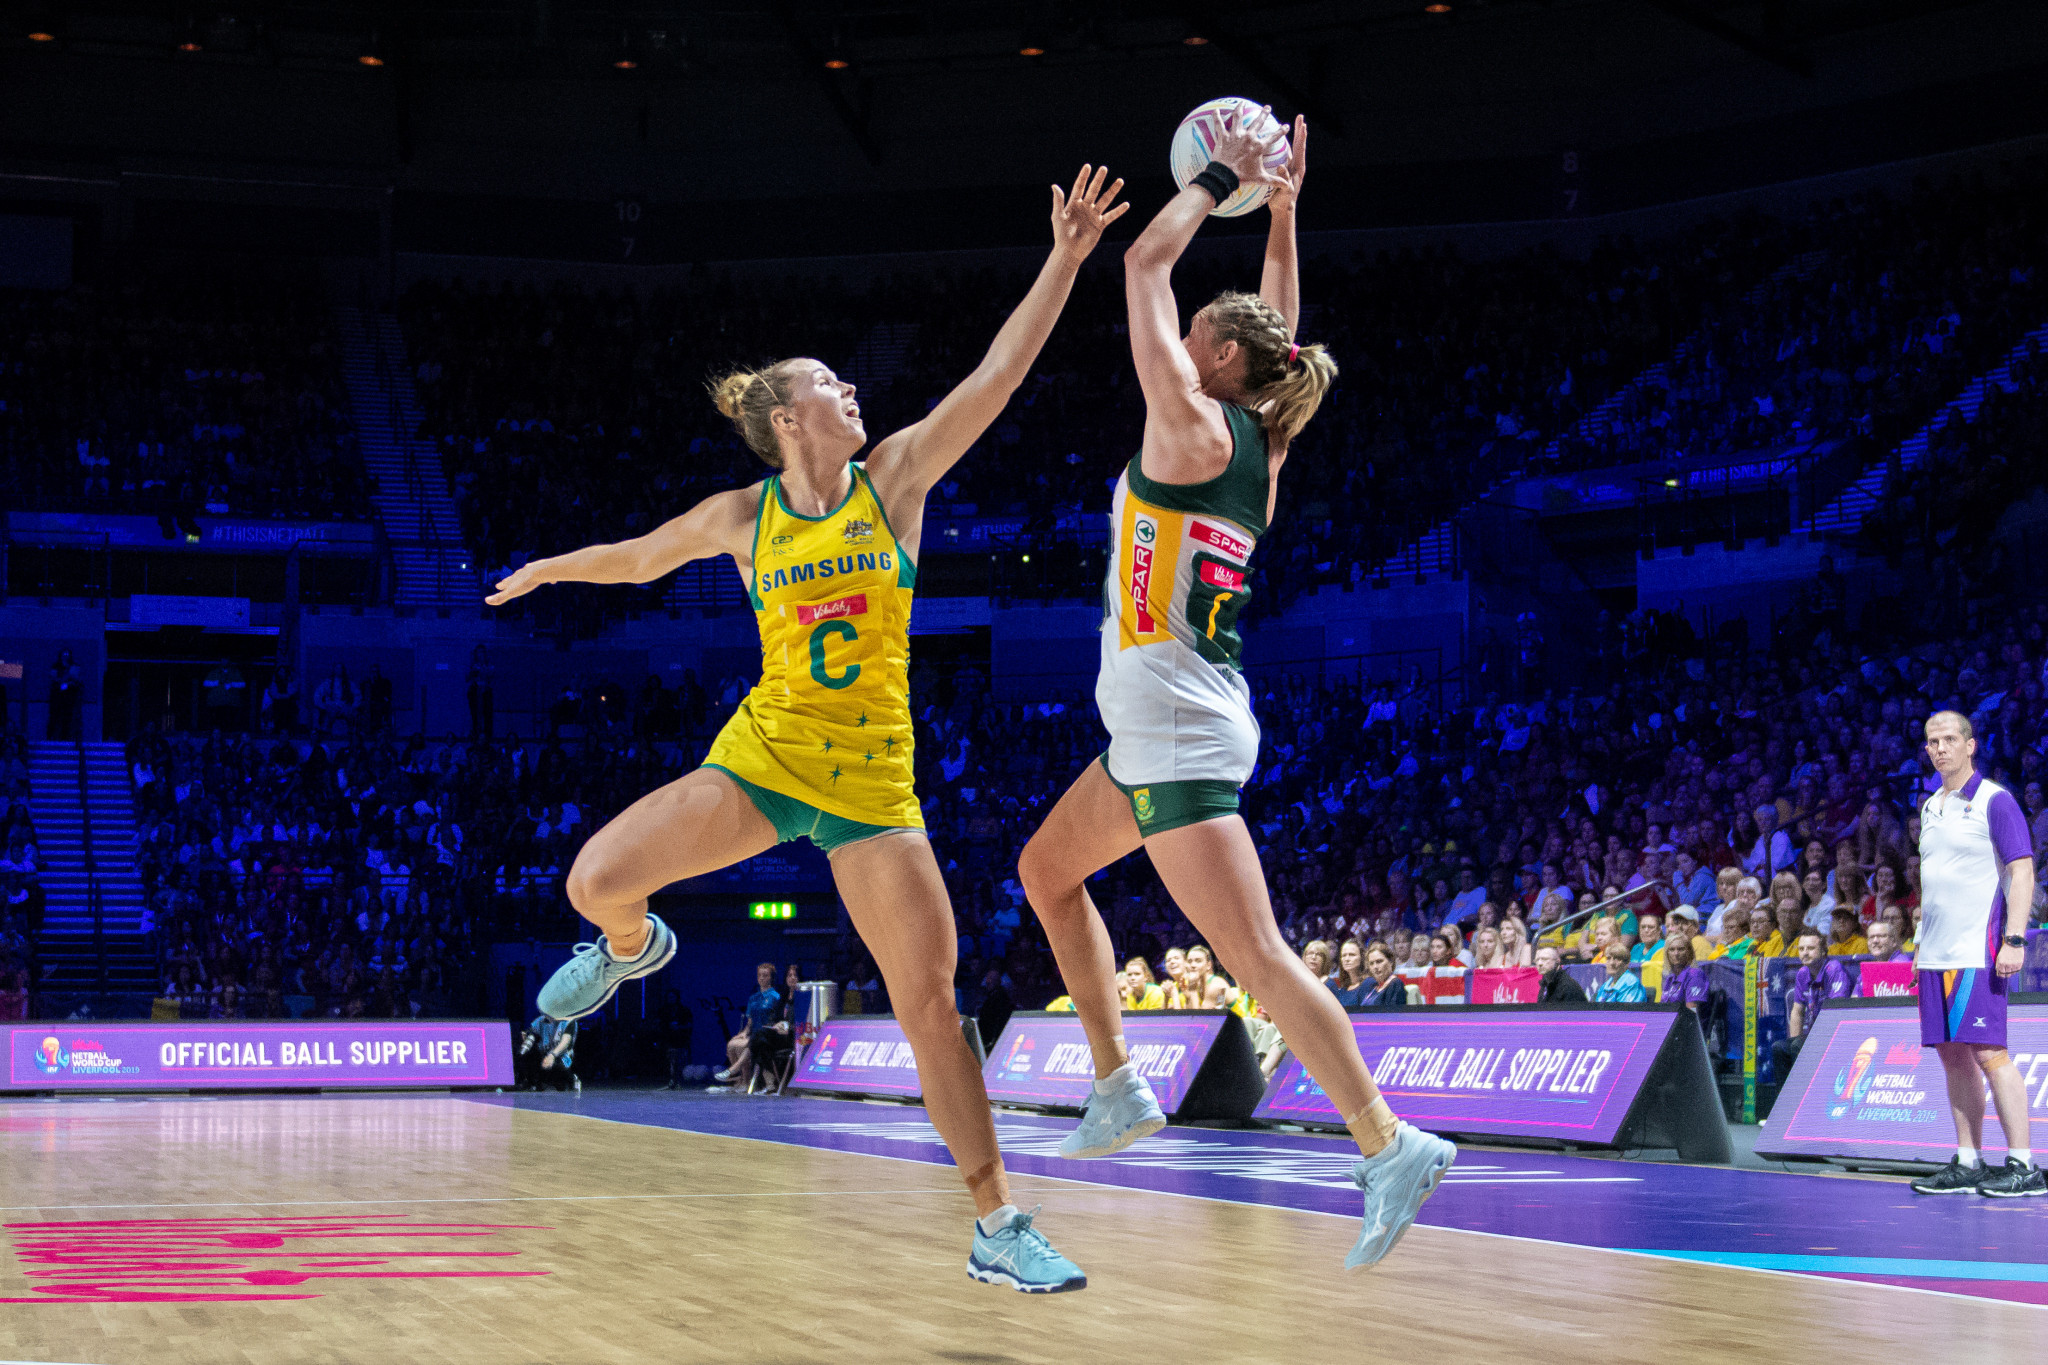 Netball Australia partner with Commonwealth Games Australia to develop netball talent